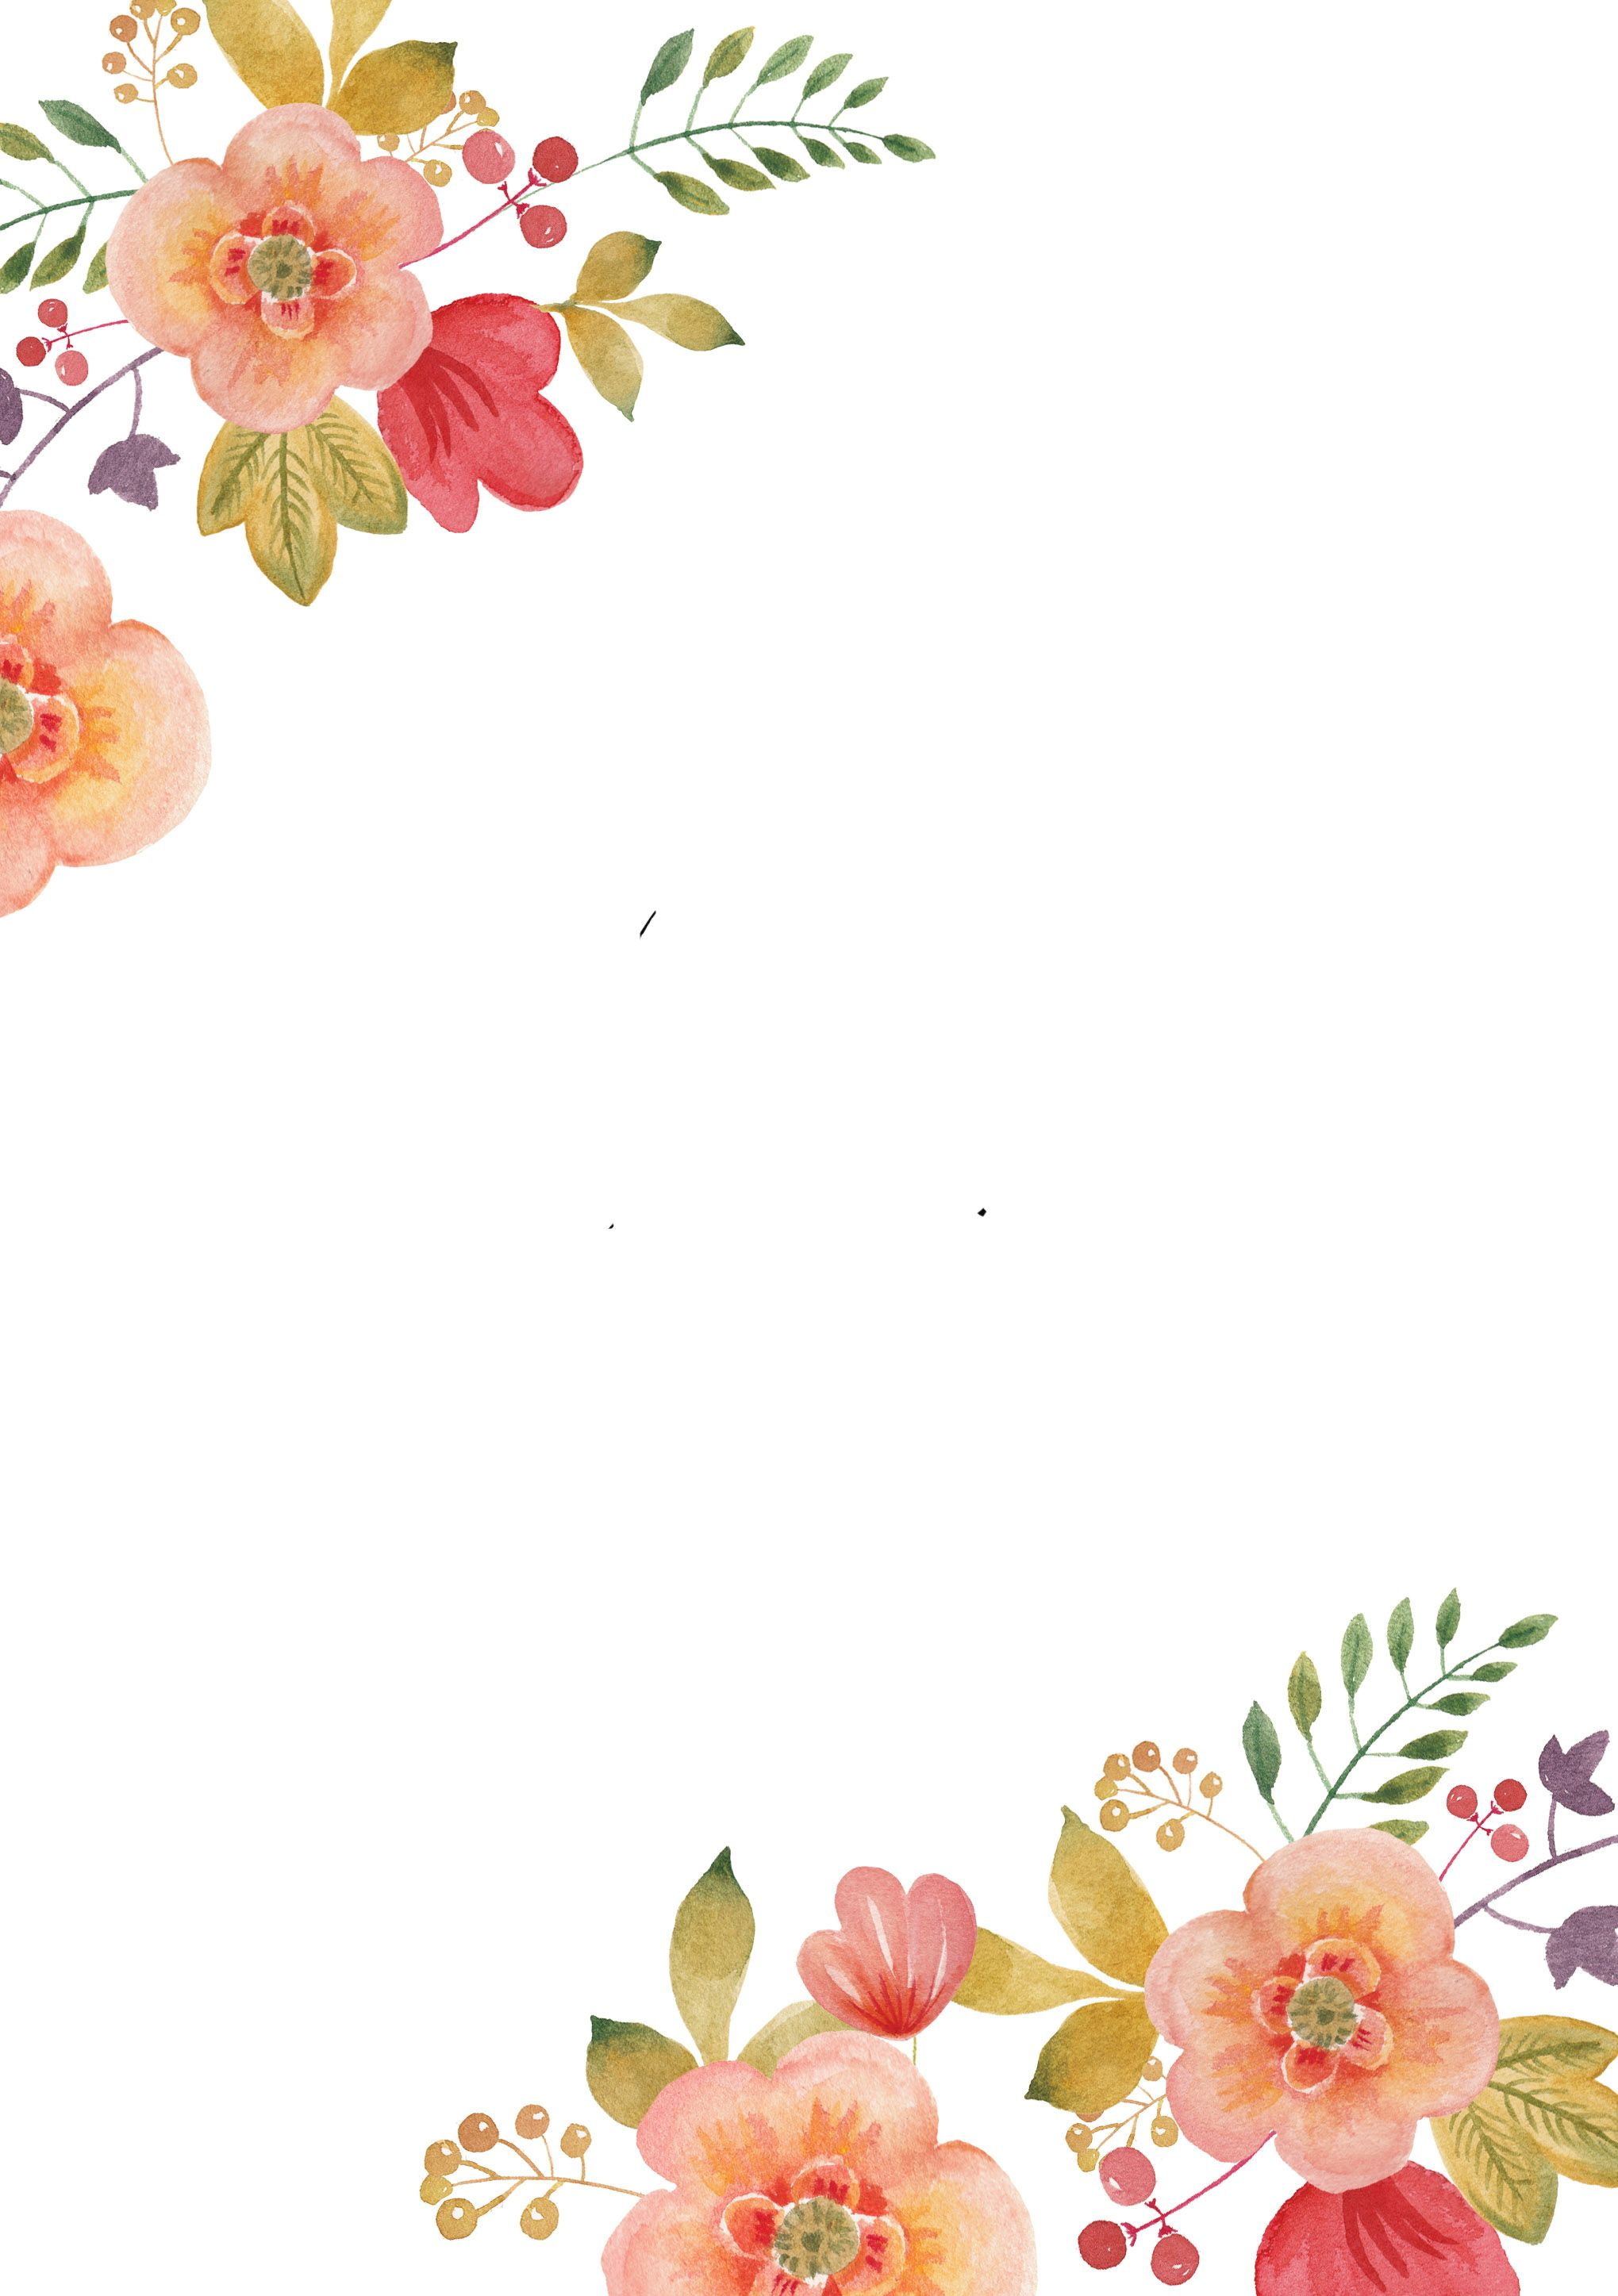 Posters Floral Watercolor Background in 2020 Floral